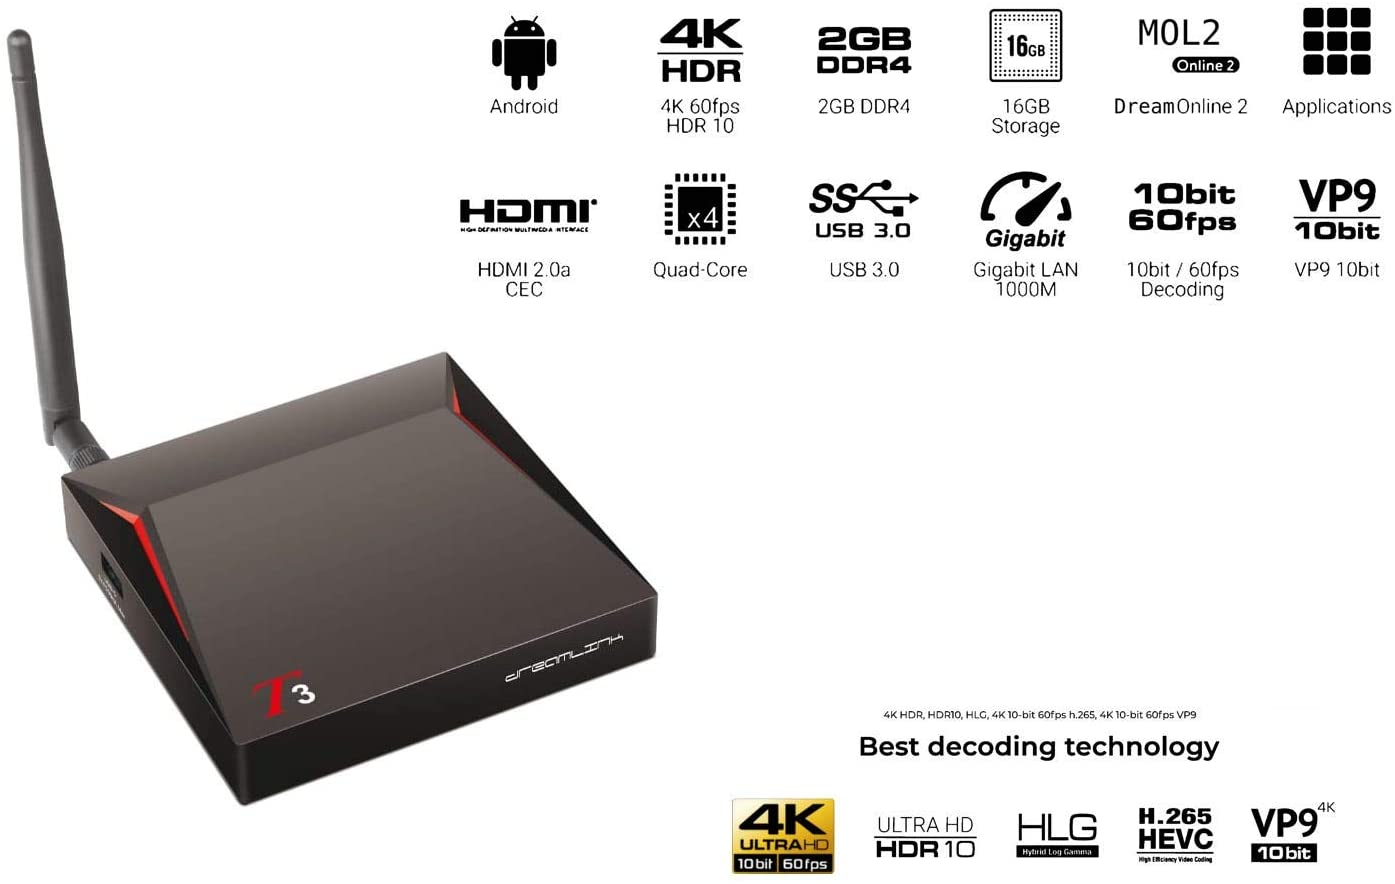 DREAMLINK T3 Ultimate 4K UHD 2GB DDR4 + 16GB | Dual band Gigabit WIFI